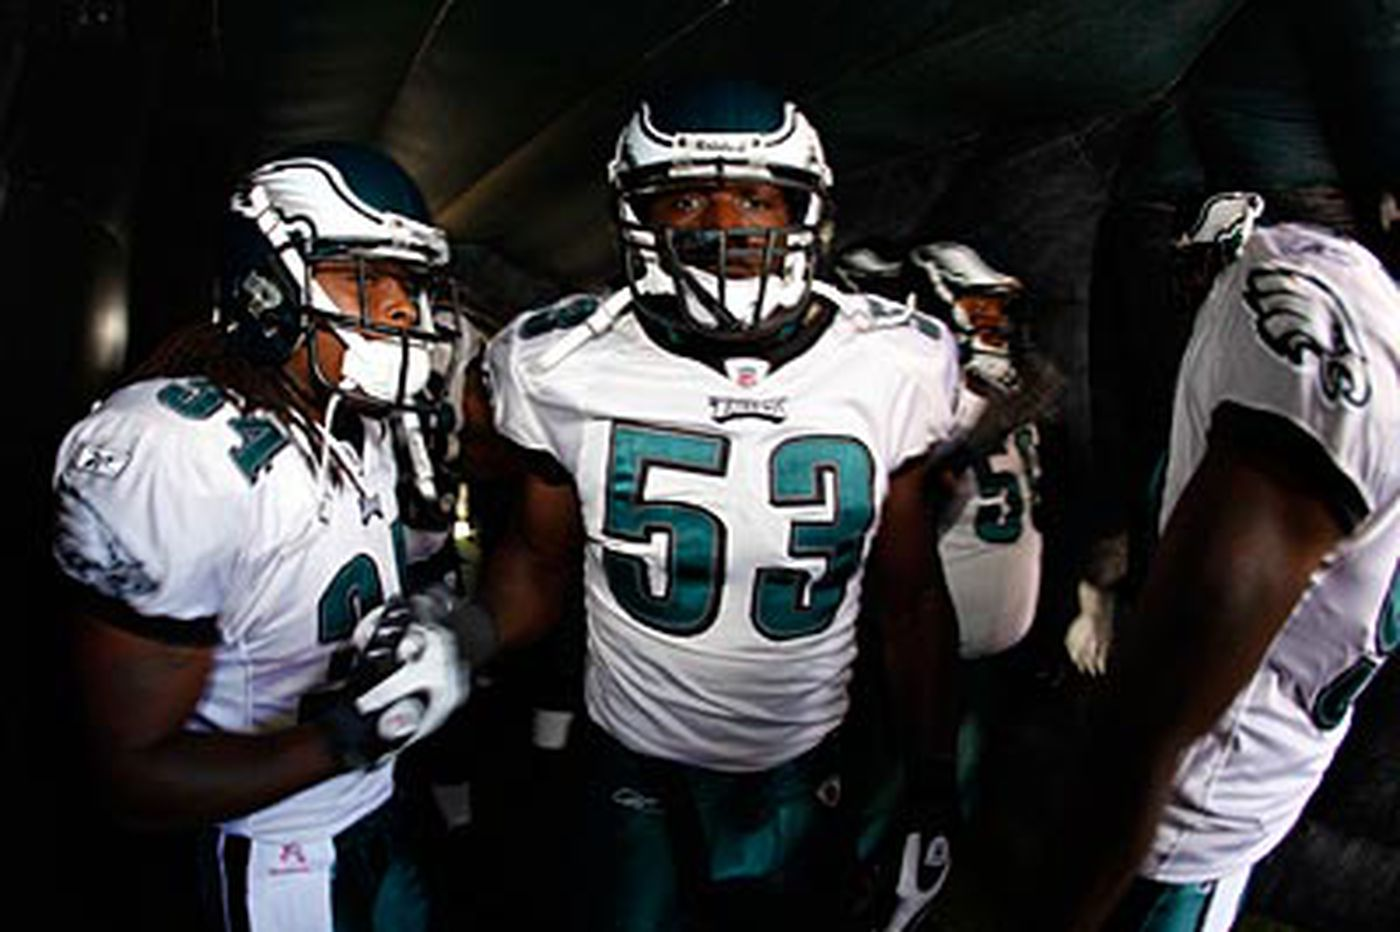 Paul Domowitch: Fokou a prominent face in crowd for Eagles this year